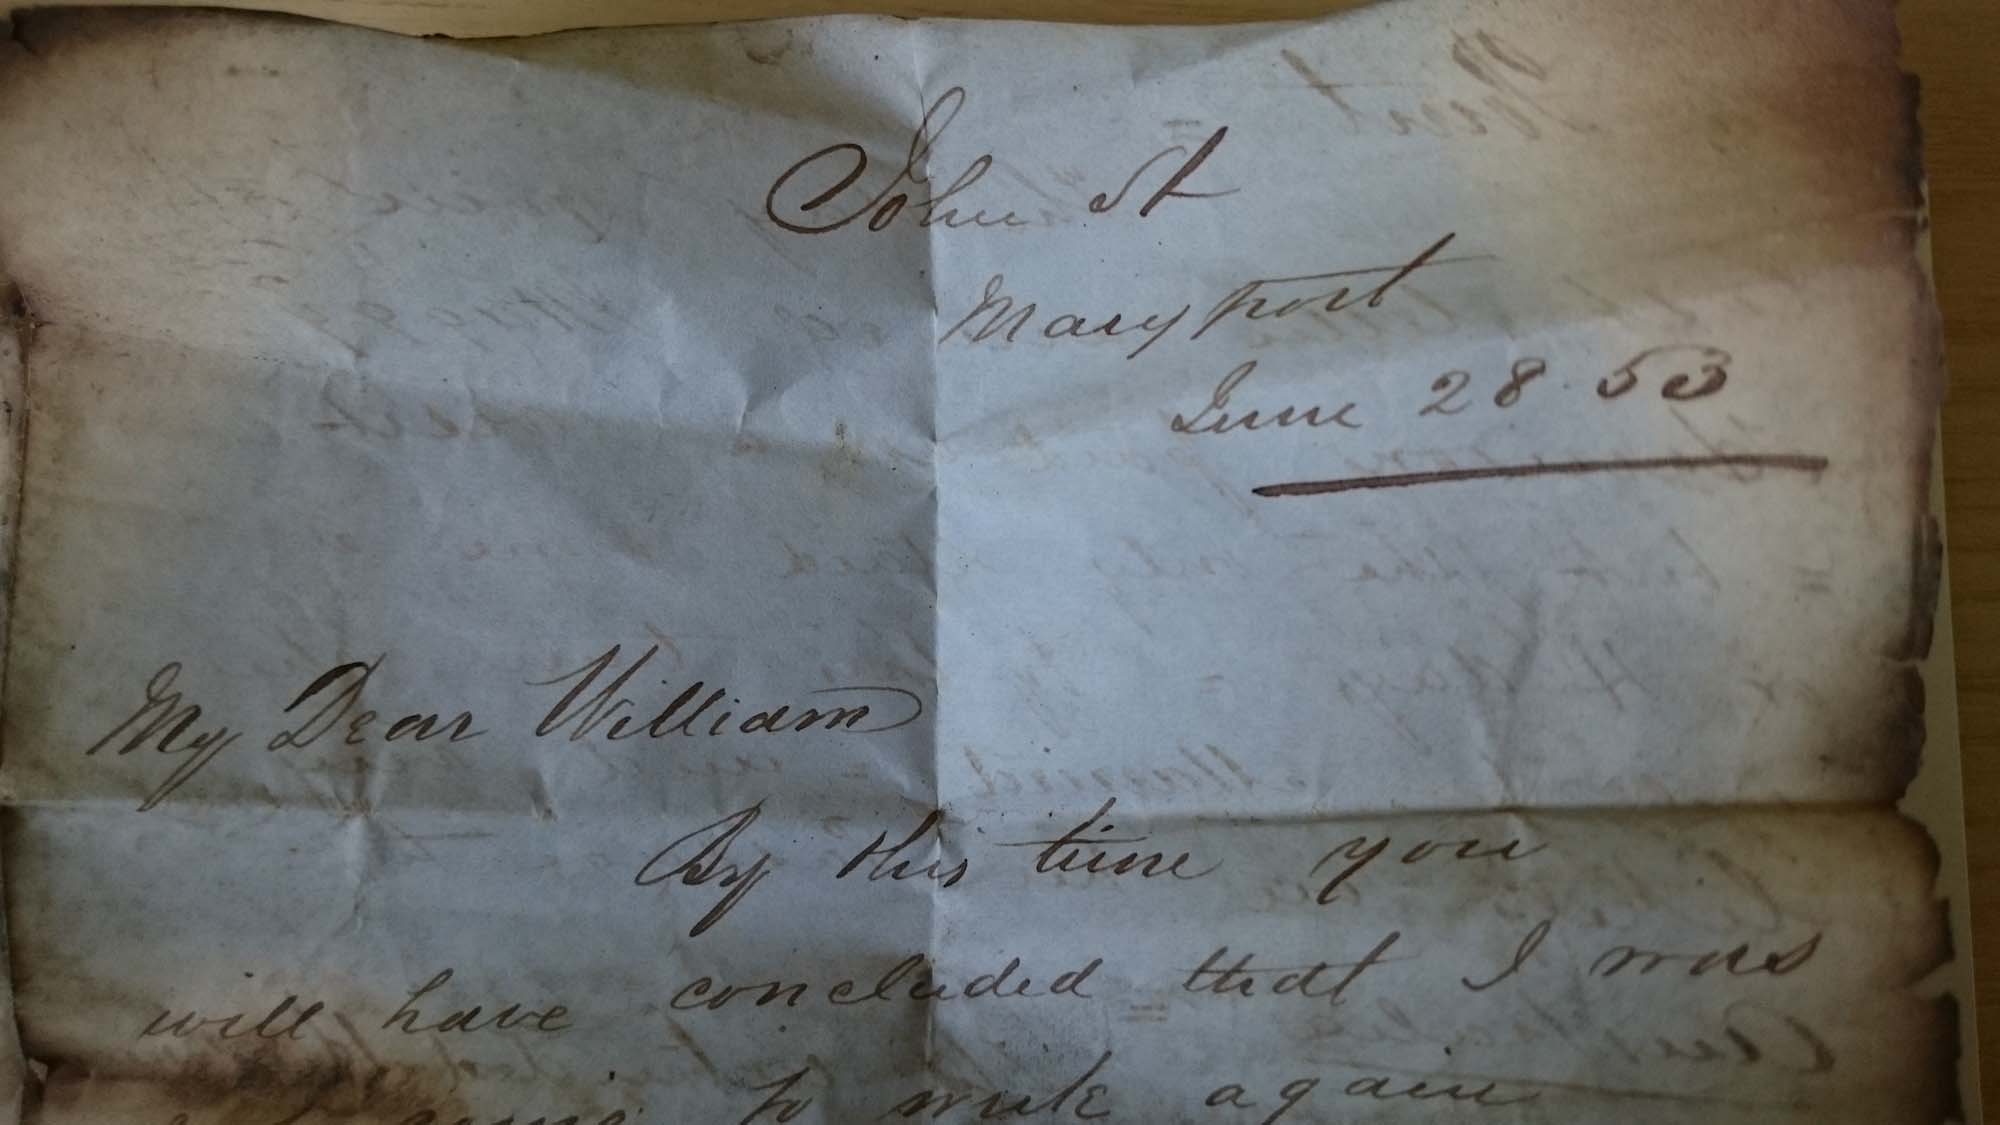 a detail of a letter dated June 28 (18)53